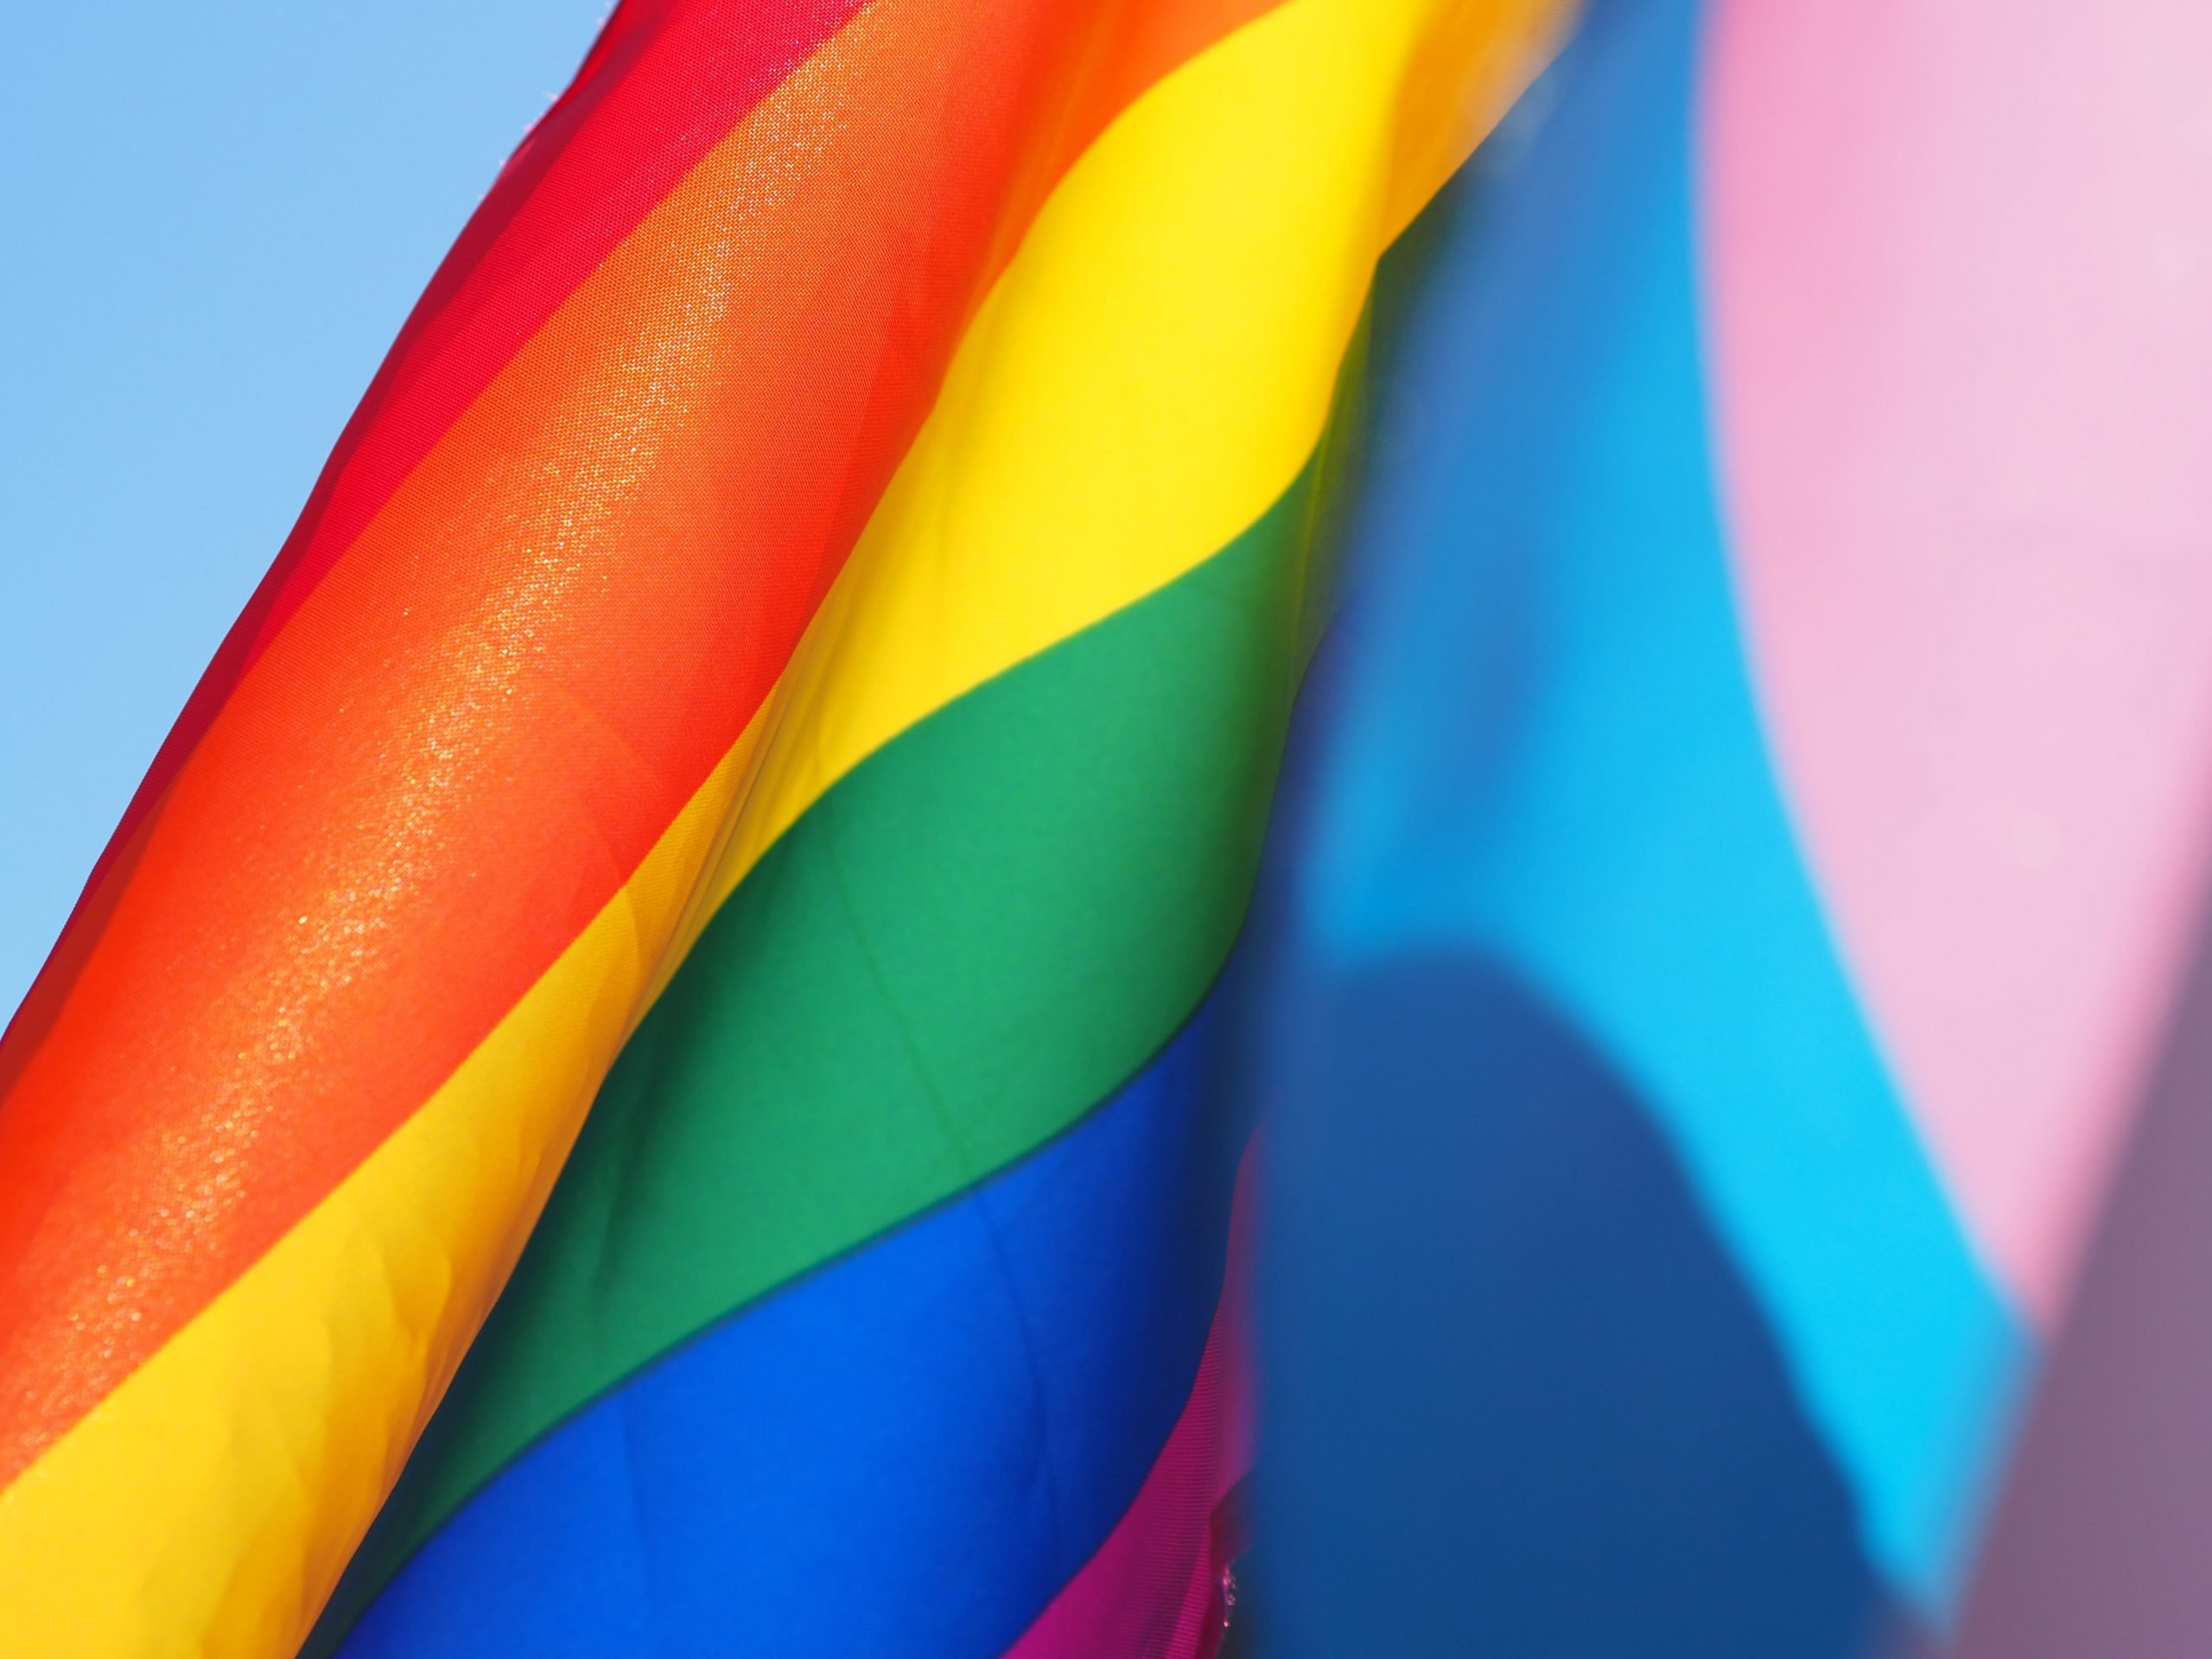 A pride flag featuring the rainbow colors as well as the pink and blue Trans Pride colors.